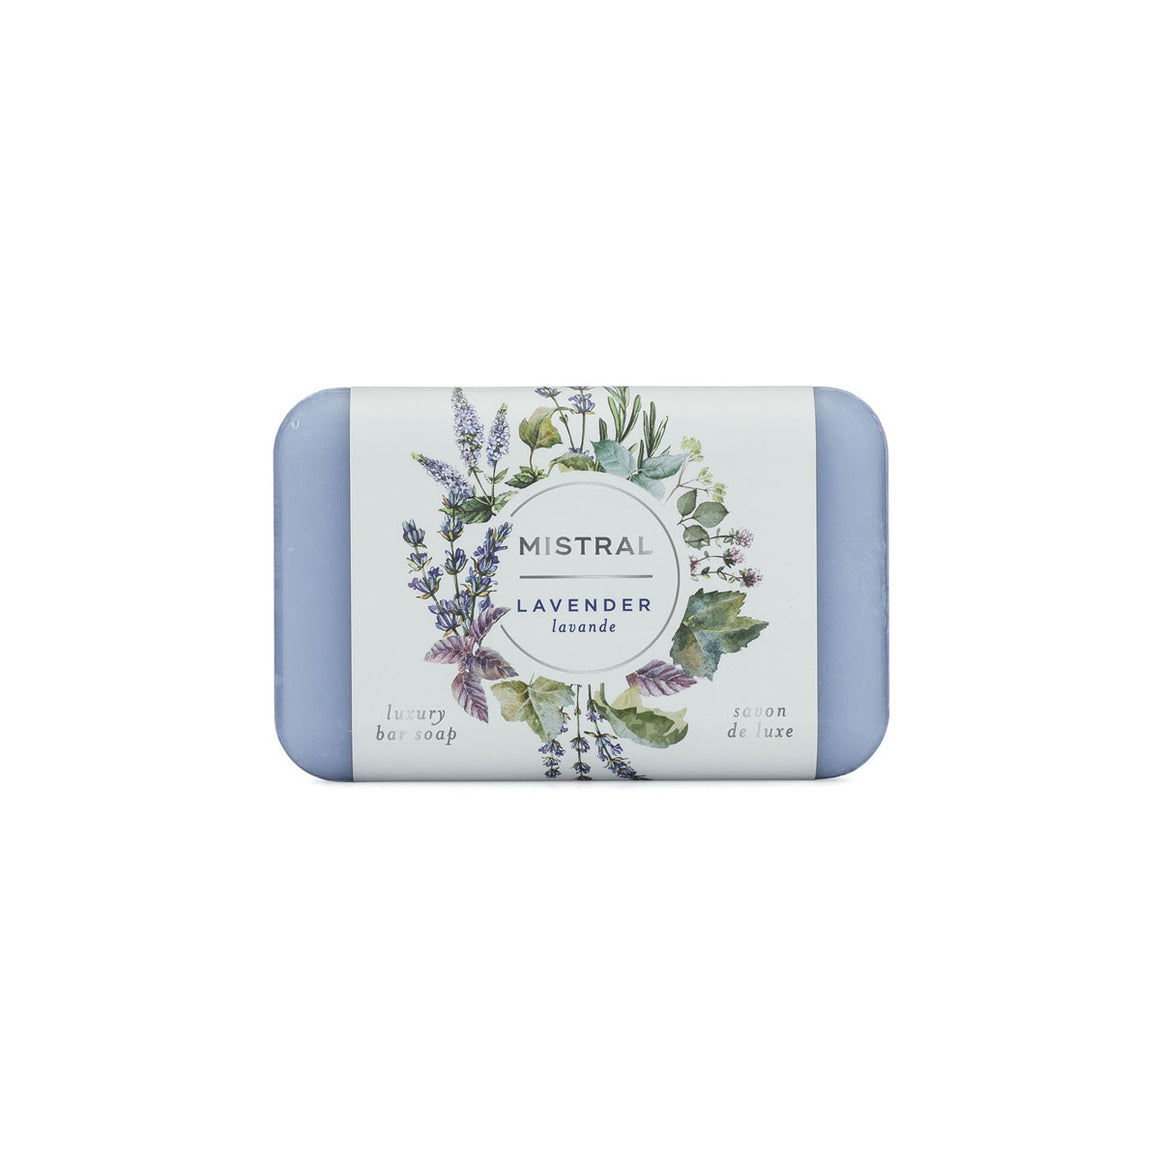 LAVENDER CLASSIC TRAVEL SIZE BAR SOAP